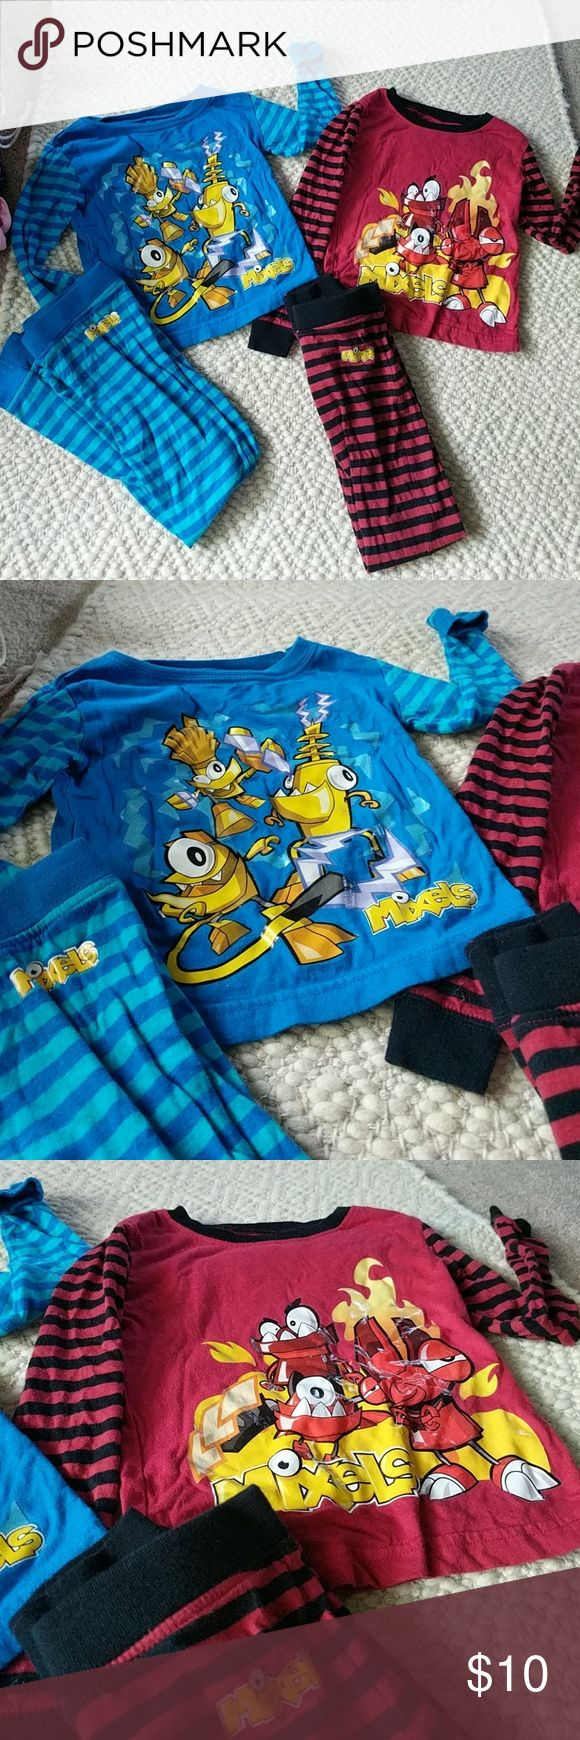 Mixels 2 Pair Pajama Set 100% Cotton Cute set for the Cartoon Network's show Mixels. Tops run small, much like PJs do these days. 100 % cotton. Sizes extra small 4/5. cartoon network Pajamas Pajama Sets